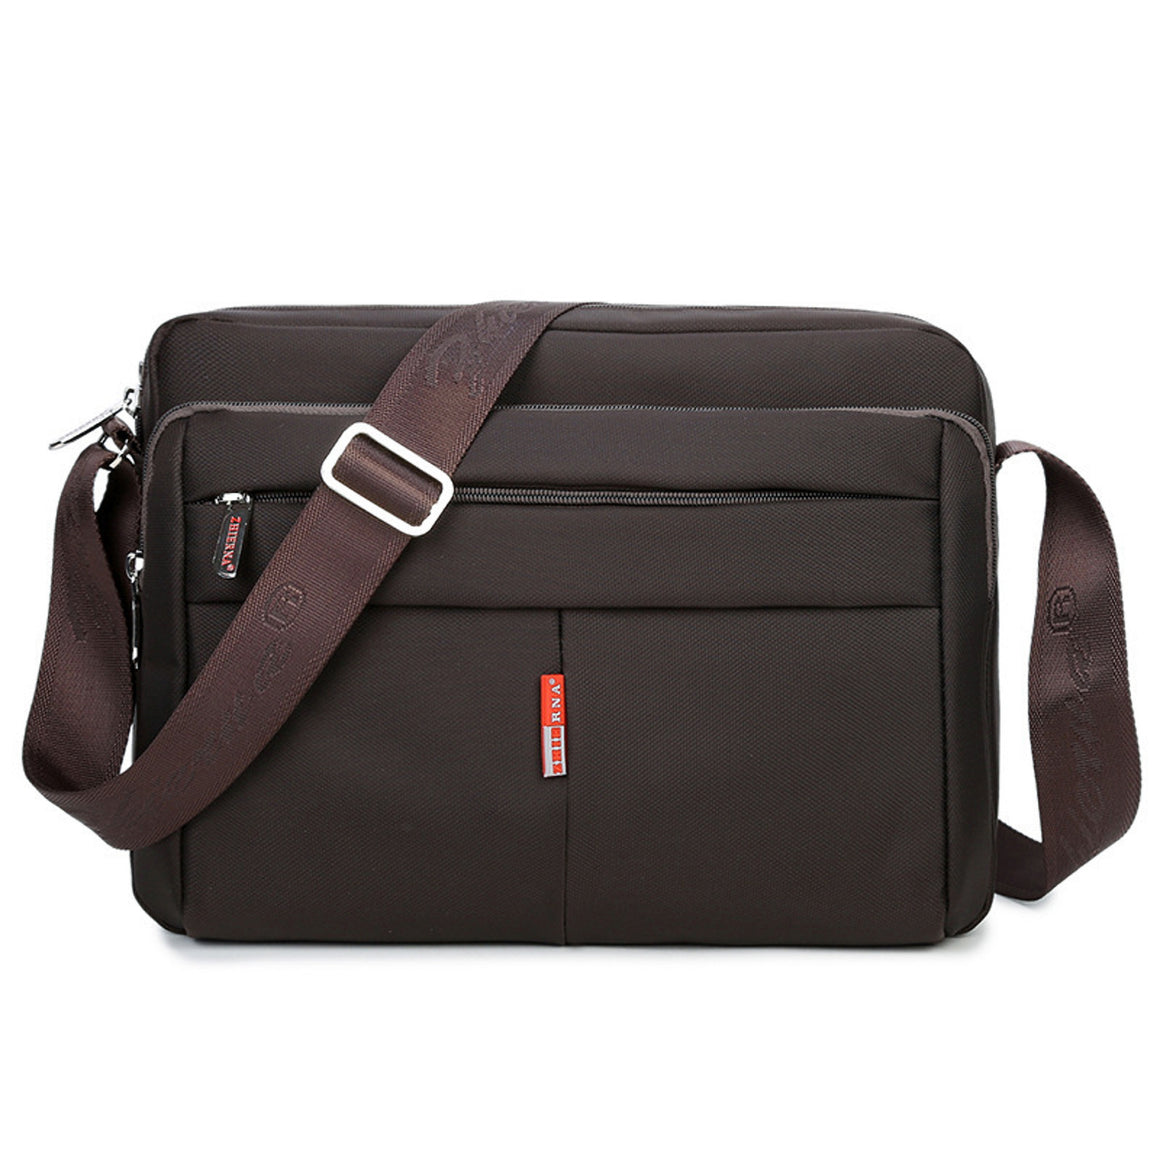 Oyixinger High Quality Man Notebook Bag Large Capacity Briefcase Good Nylon Business Laptop Bags Shoulder Messenger Briefcase